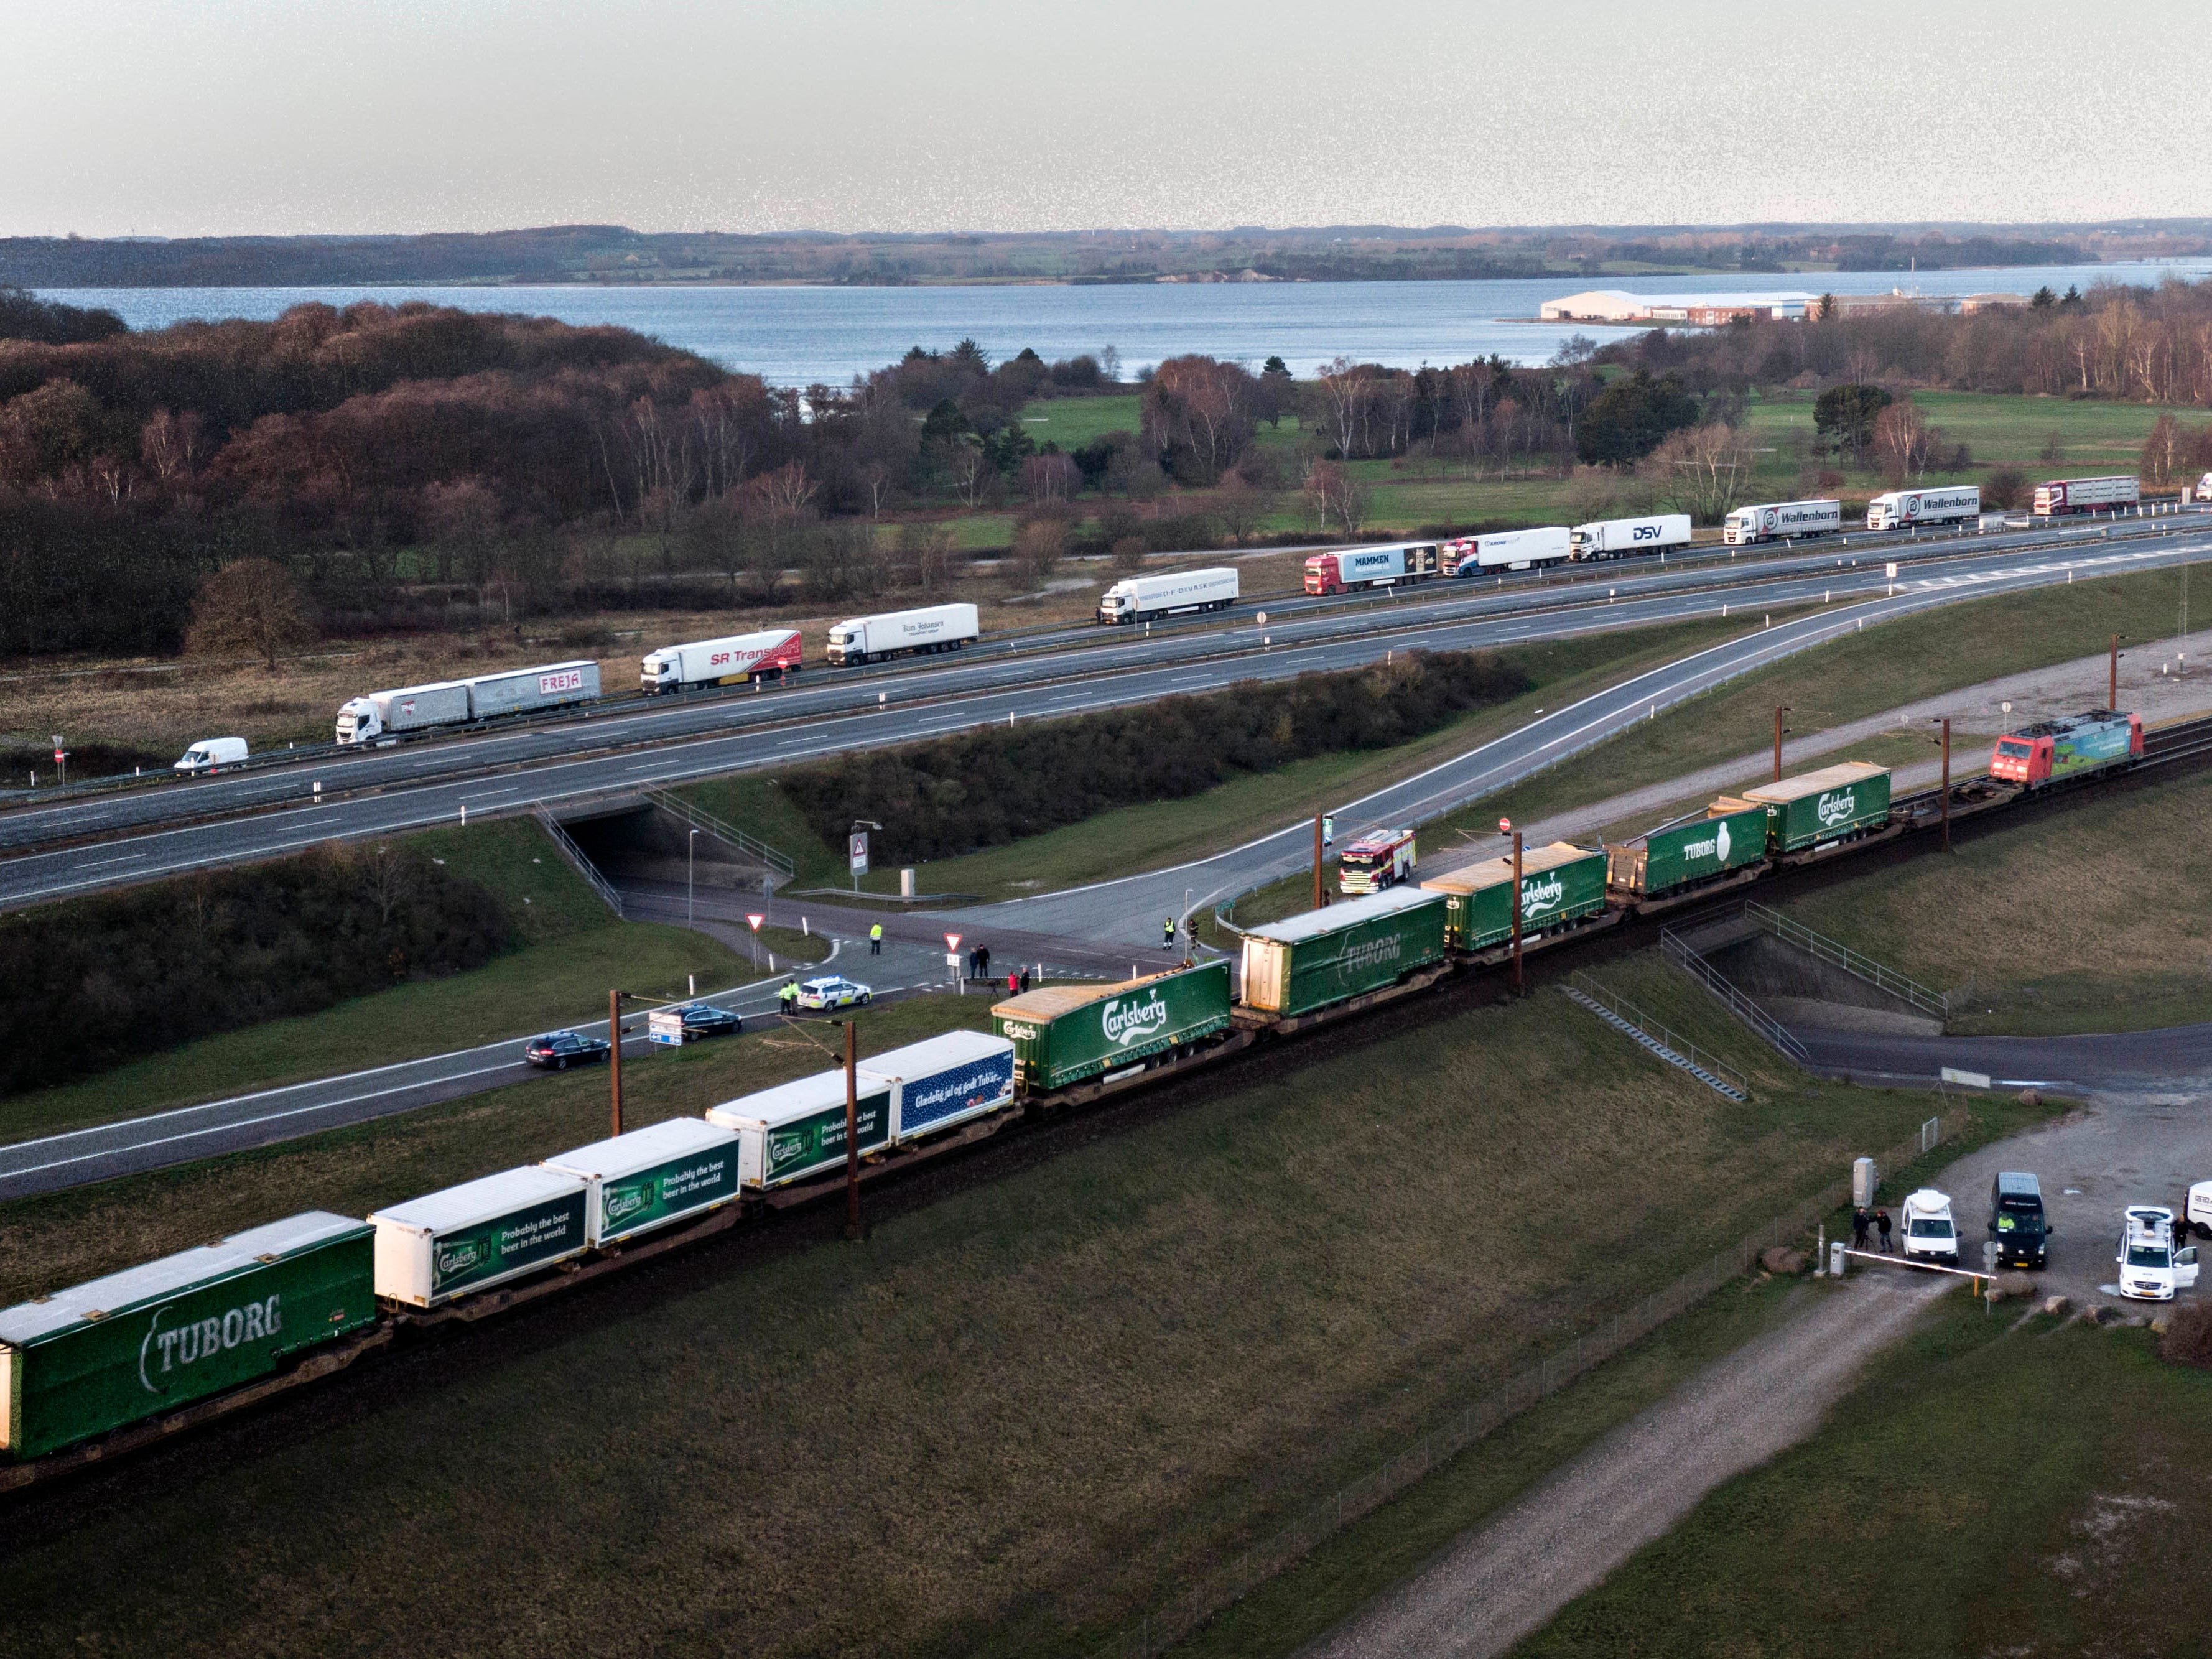 A aerial view of a cargo train with damaged compartments near the Storebaelt bridge, near Nyborg in Denmark, Wednesday, Jan. 2, 2019. Danish police say several people have been killed in a train accident on a bridge linking the central islands of Zealand and Funen. Police did not provide further details about those killed or the number of people injured in Wednesday's incident, which took place about 8 a.m. local time. Danish media reported that a tarpaulin on a freight train hit a passenger train going in the opposite direction, prompting it to brake suddenly. (Michael Bager/Ritzau Scanpix via AP) ORG XMIT: TH808